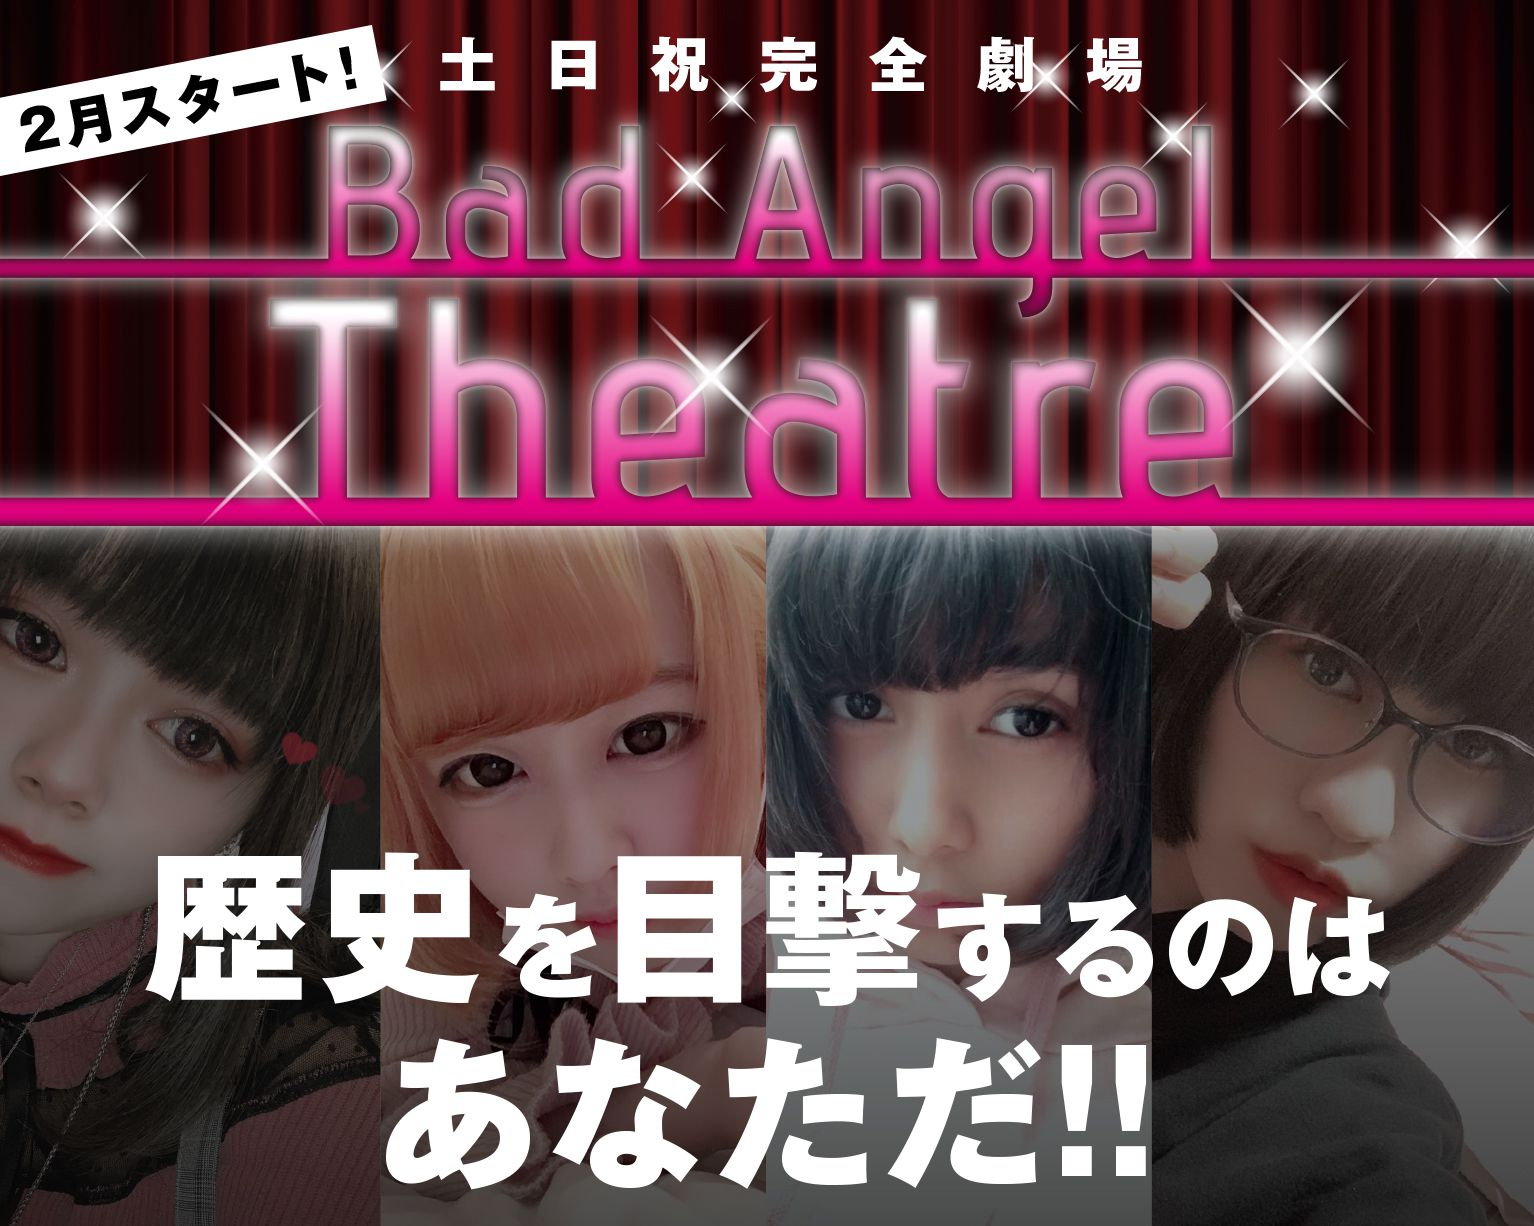 Bad Angel Theatre